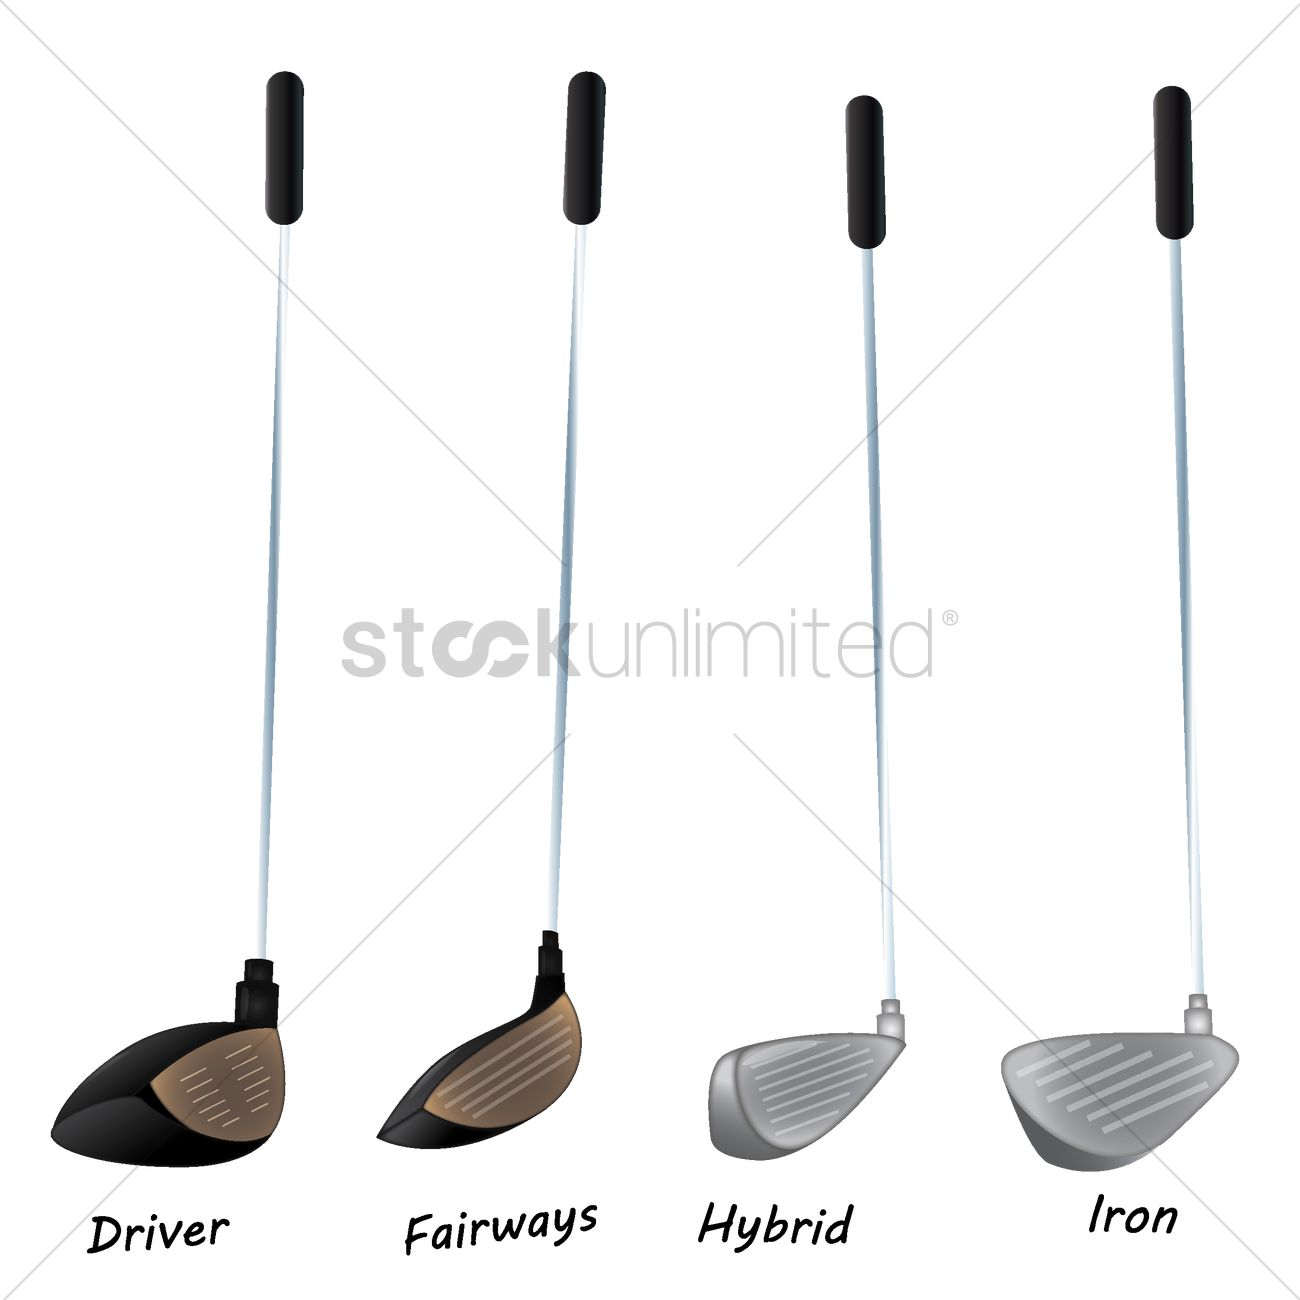 Set Of Golf Clubs Vector Image 1789073 Stockunlimited